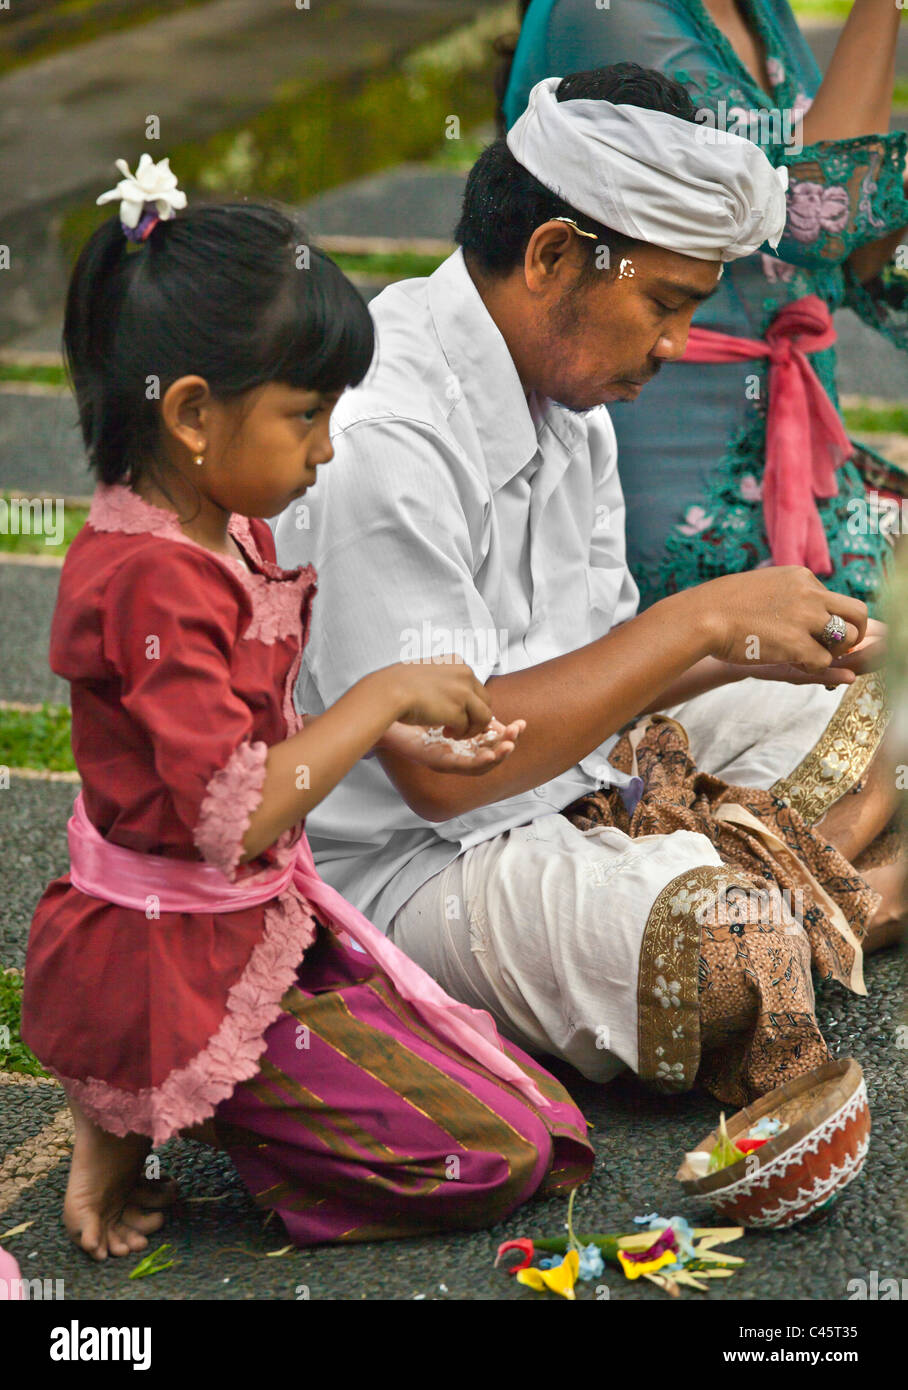 Father and daughter pray at PURA TAMAN SARASWATI during the GALUNGAN FESTIVAL - UBUD, BALI, INDONESIA - Stock Image